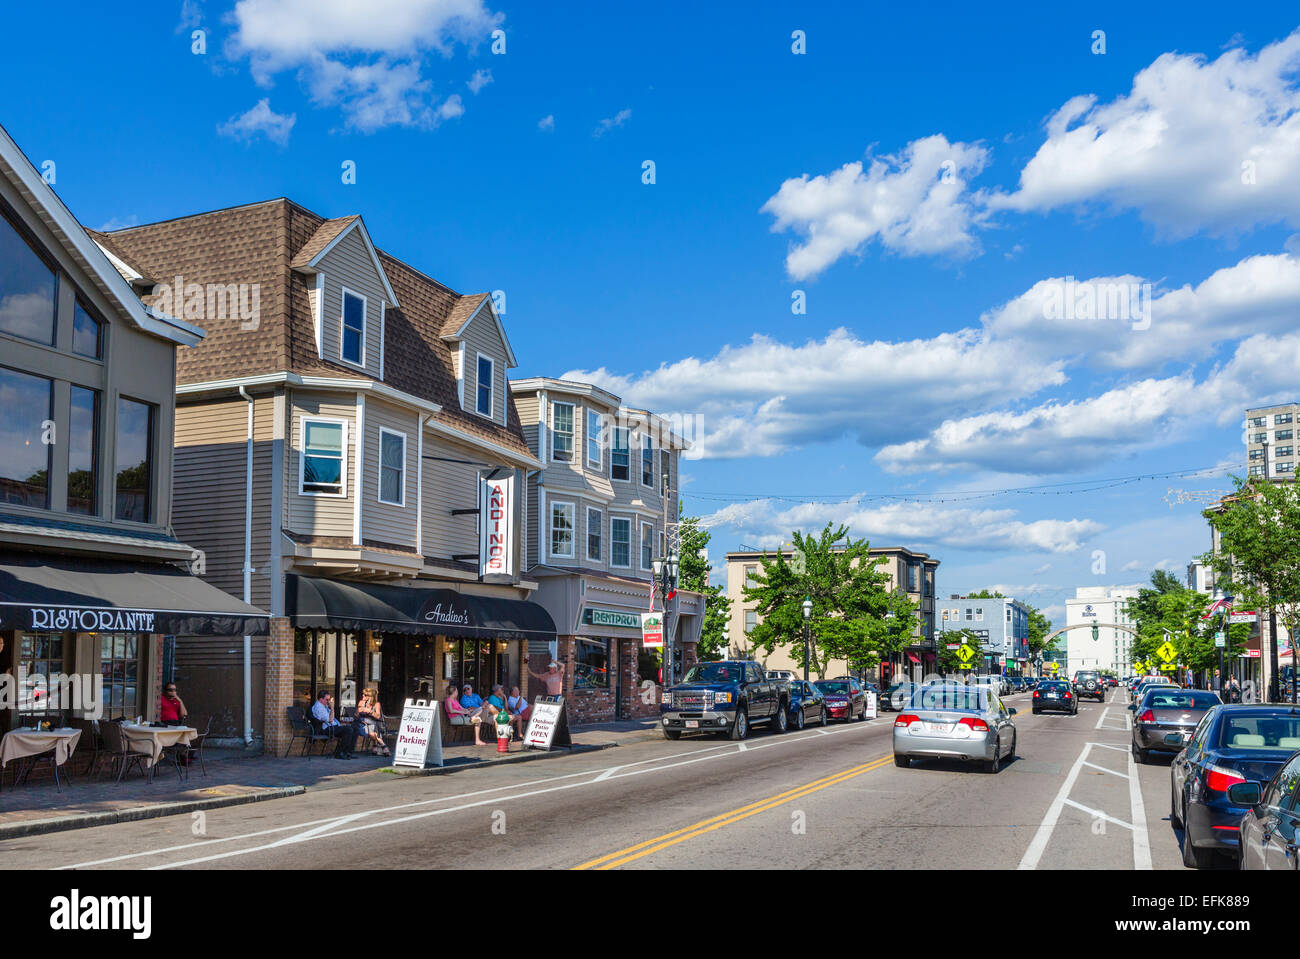 Atwells Avenue in the Federal Hill District, Providence, Rhode Island, USA - Stock Image